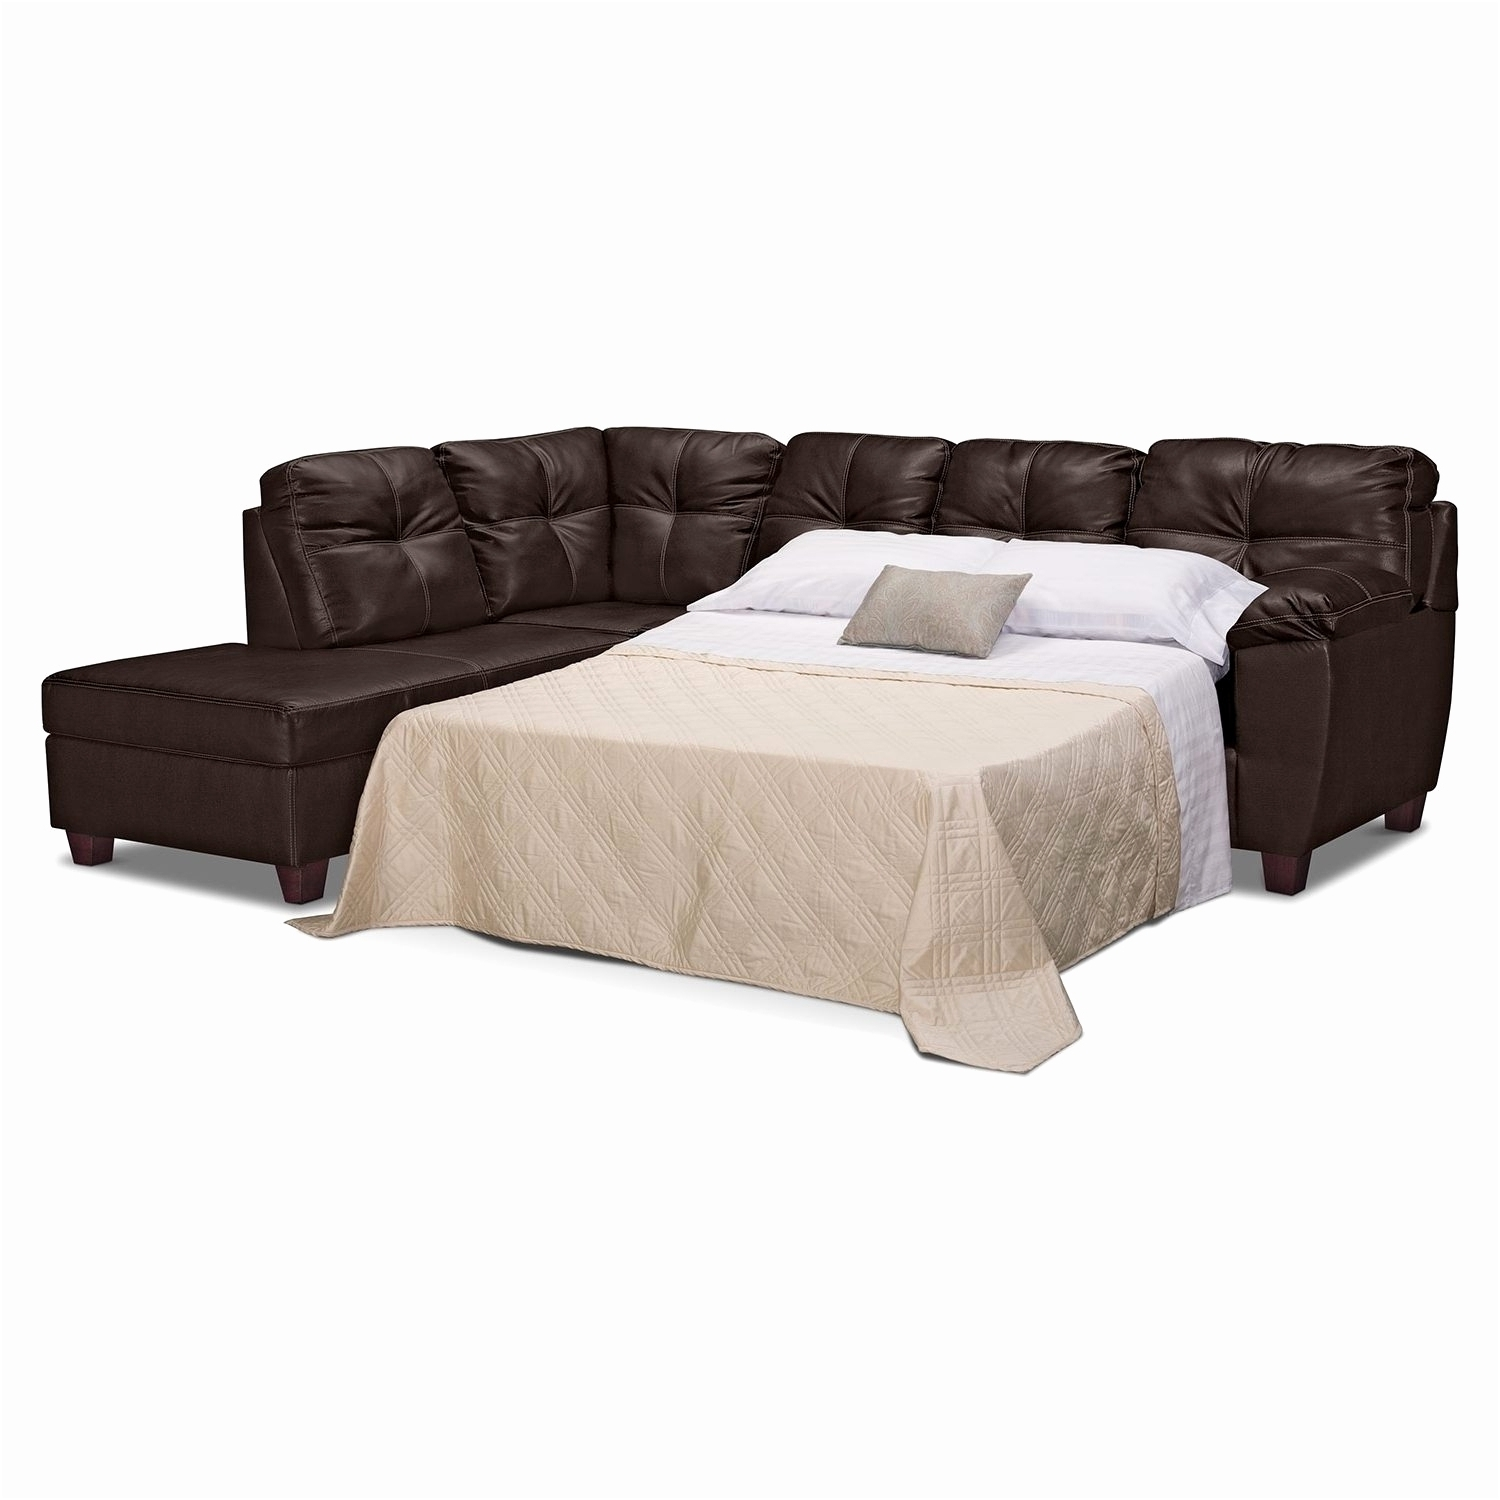 Well Known Ikea Sectional Sofa Beds Throughout Luxury Modular Sleeper Sofa Inspirational – Sofa Furnitures (View 20 of 20)